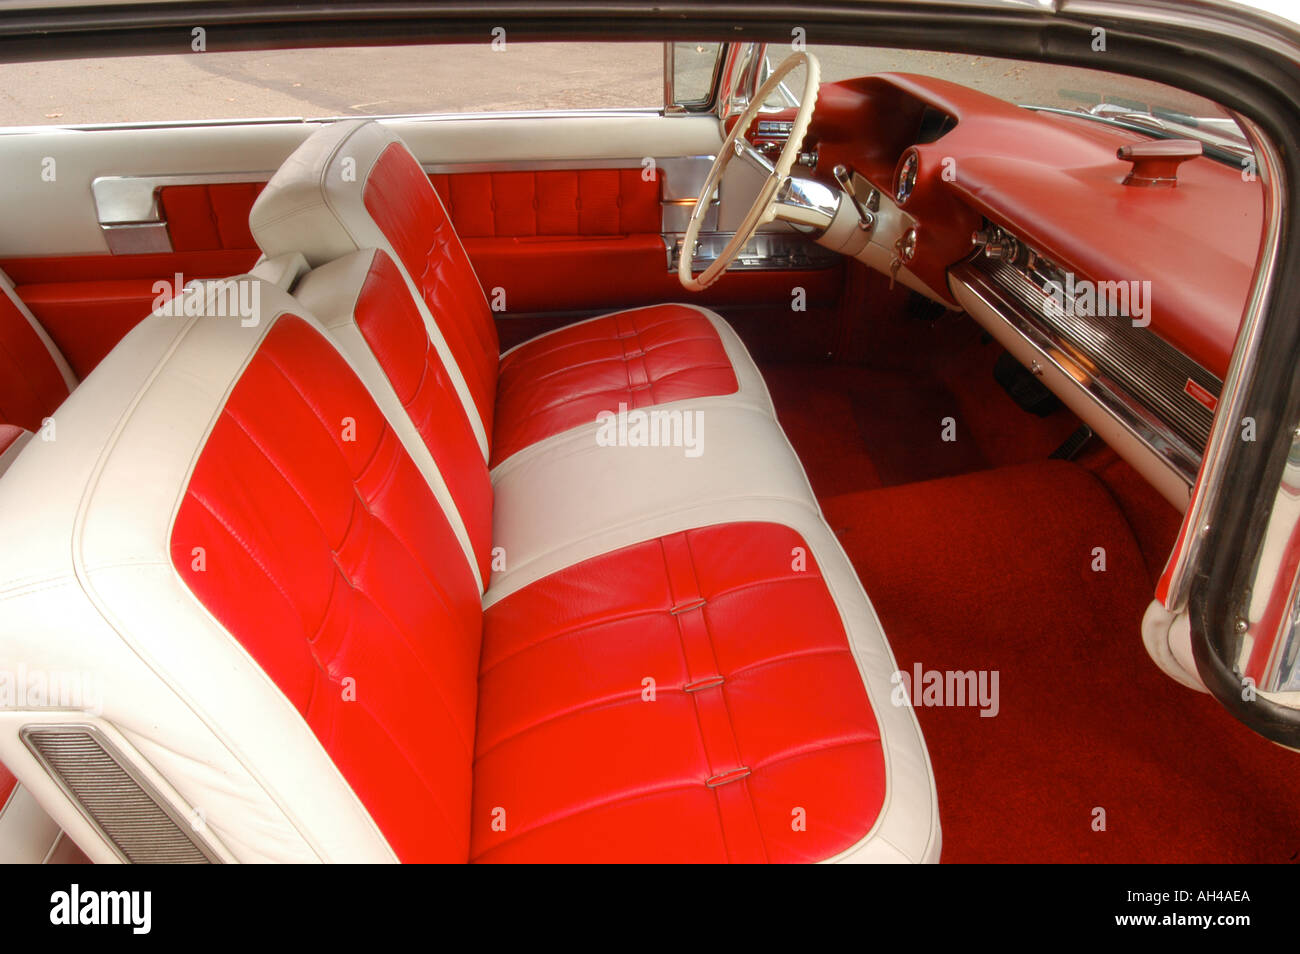 1960 cadillac coupe in cream - Stock Image